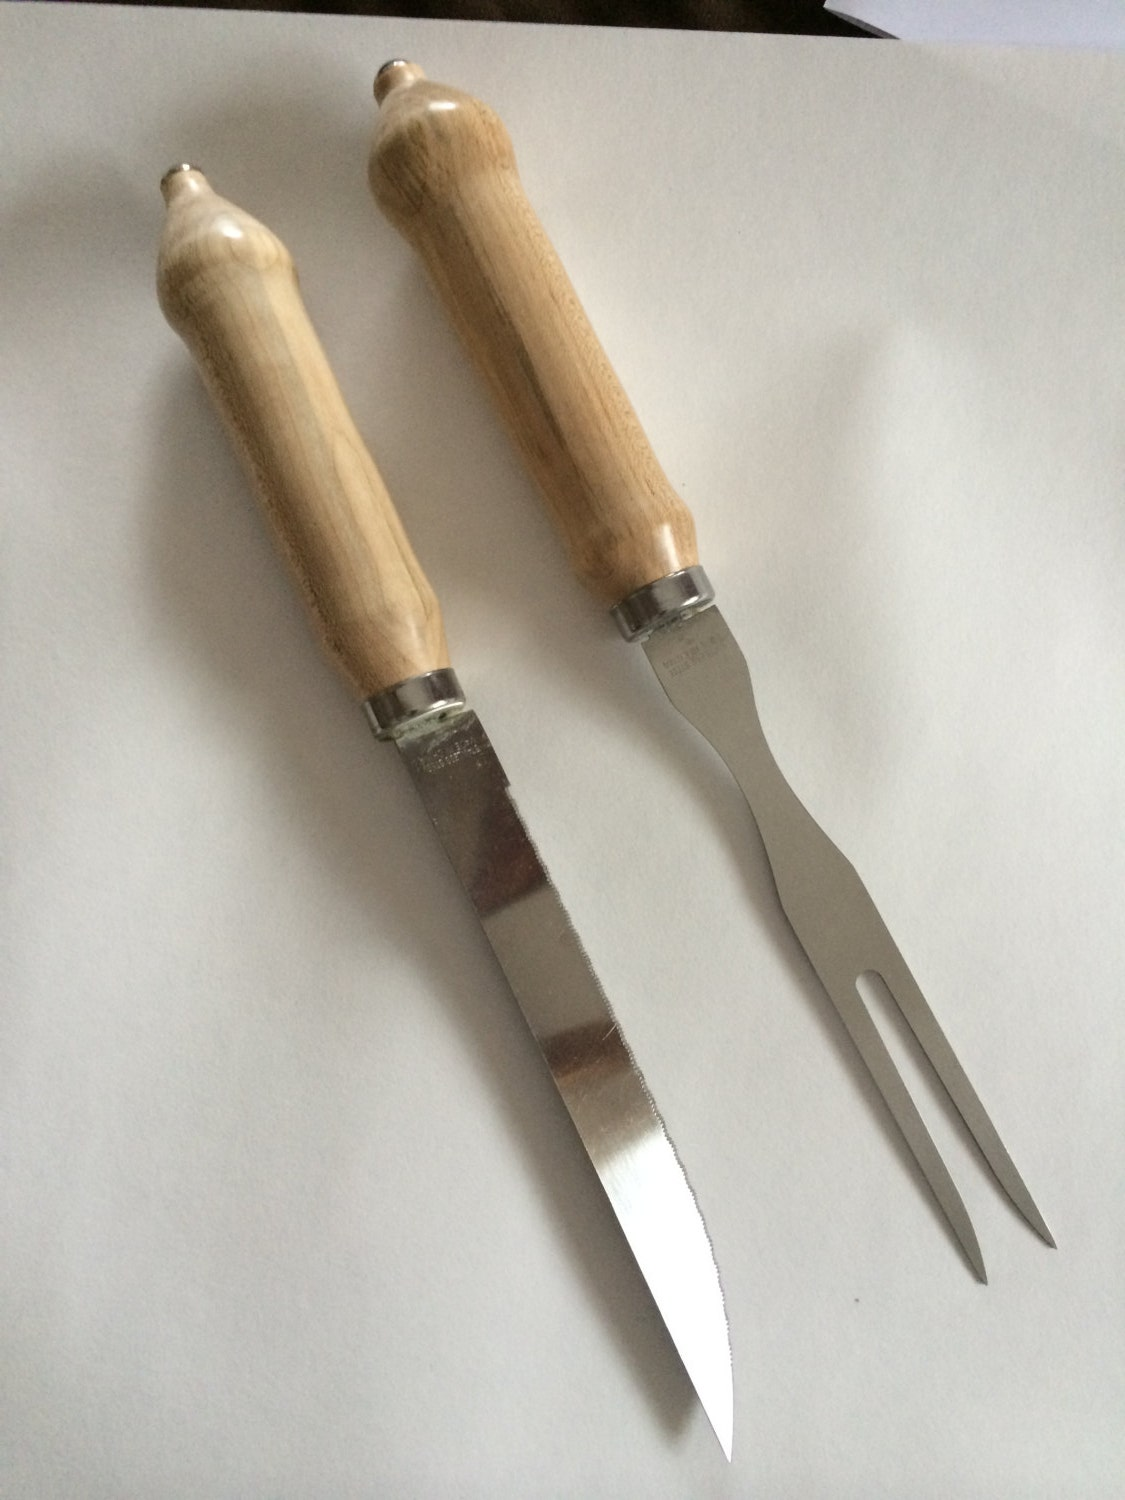 Carving knife and fork set by bolducwoodworking on etsy